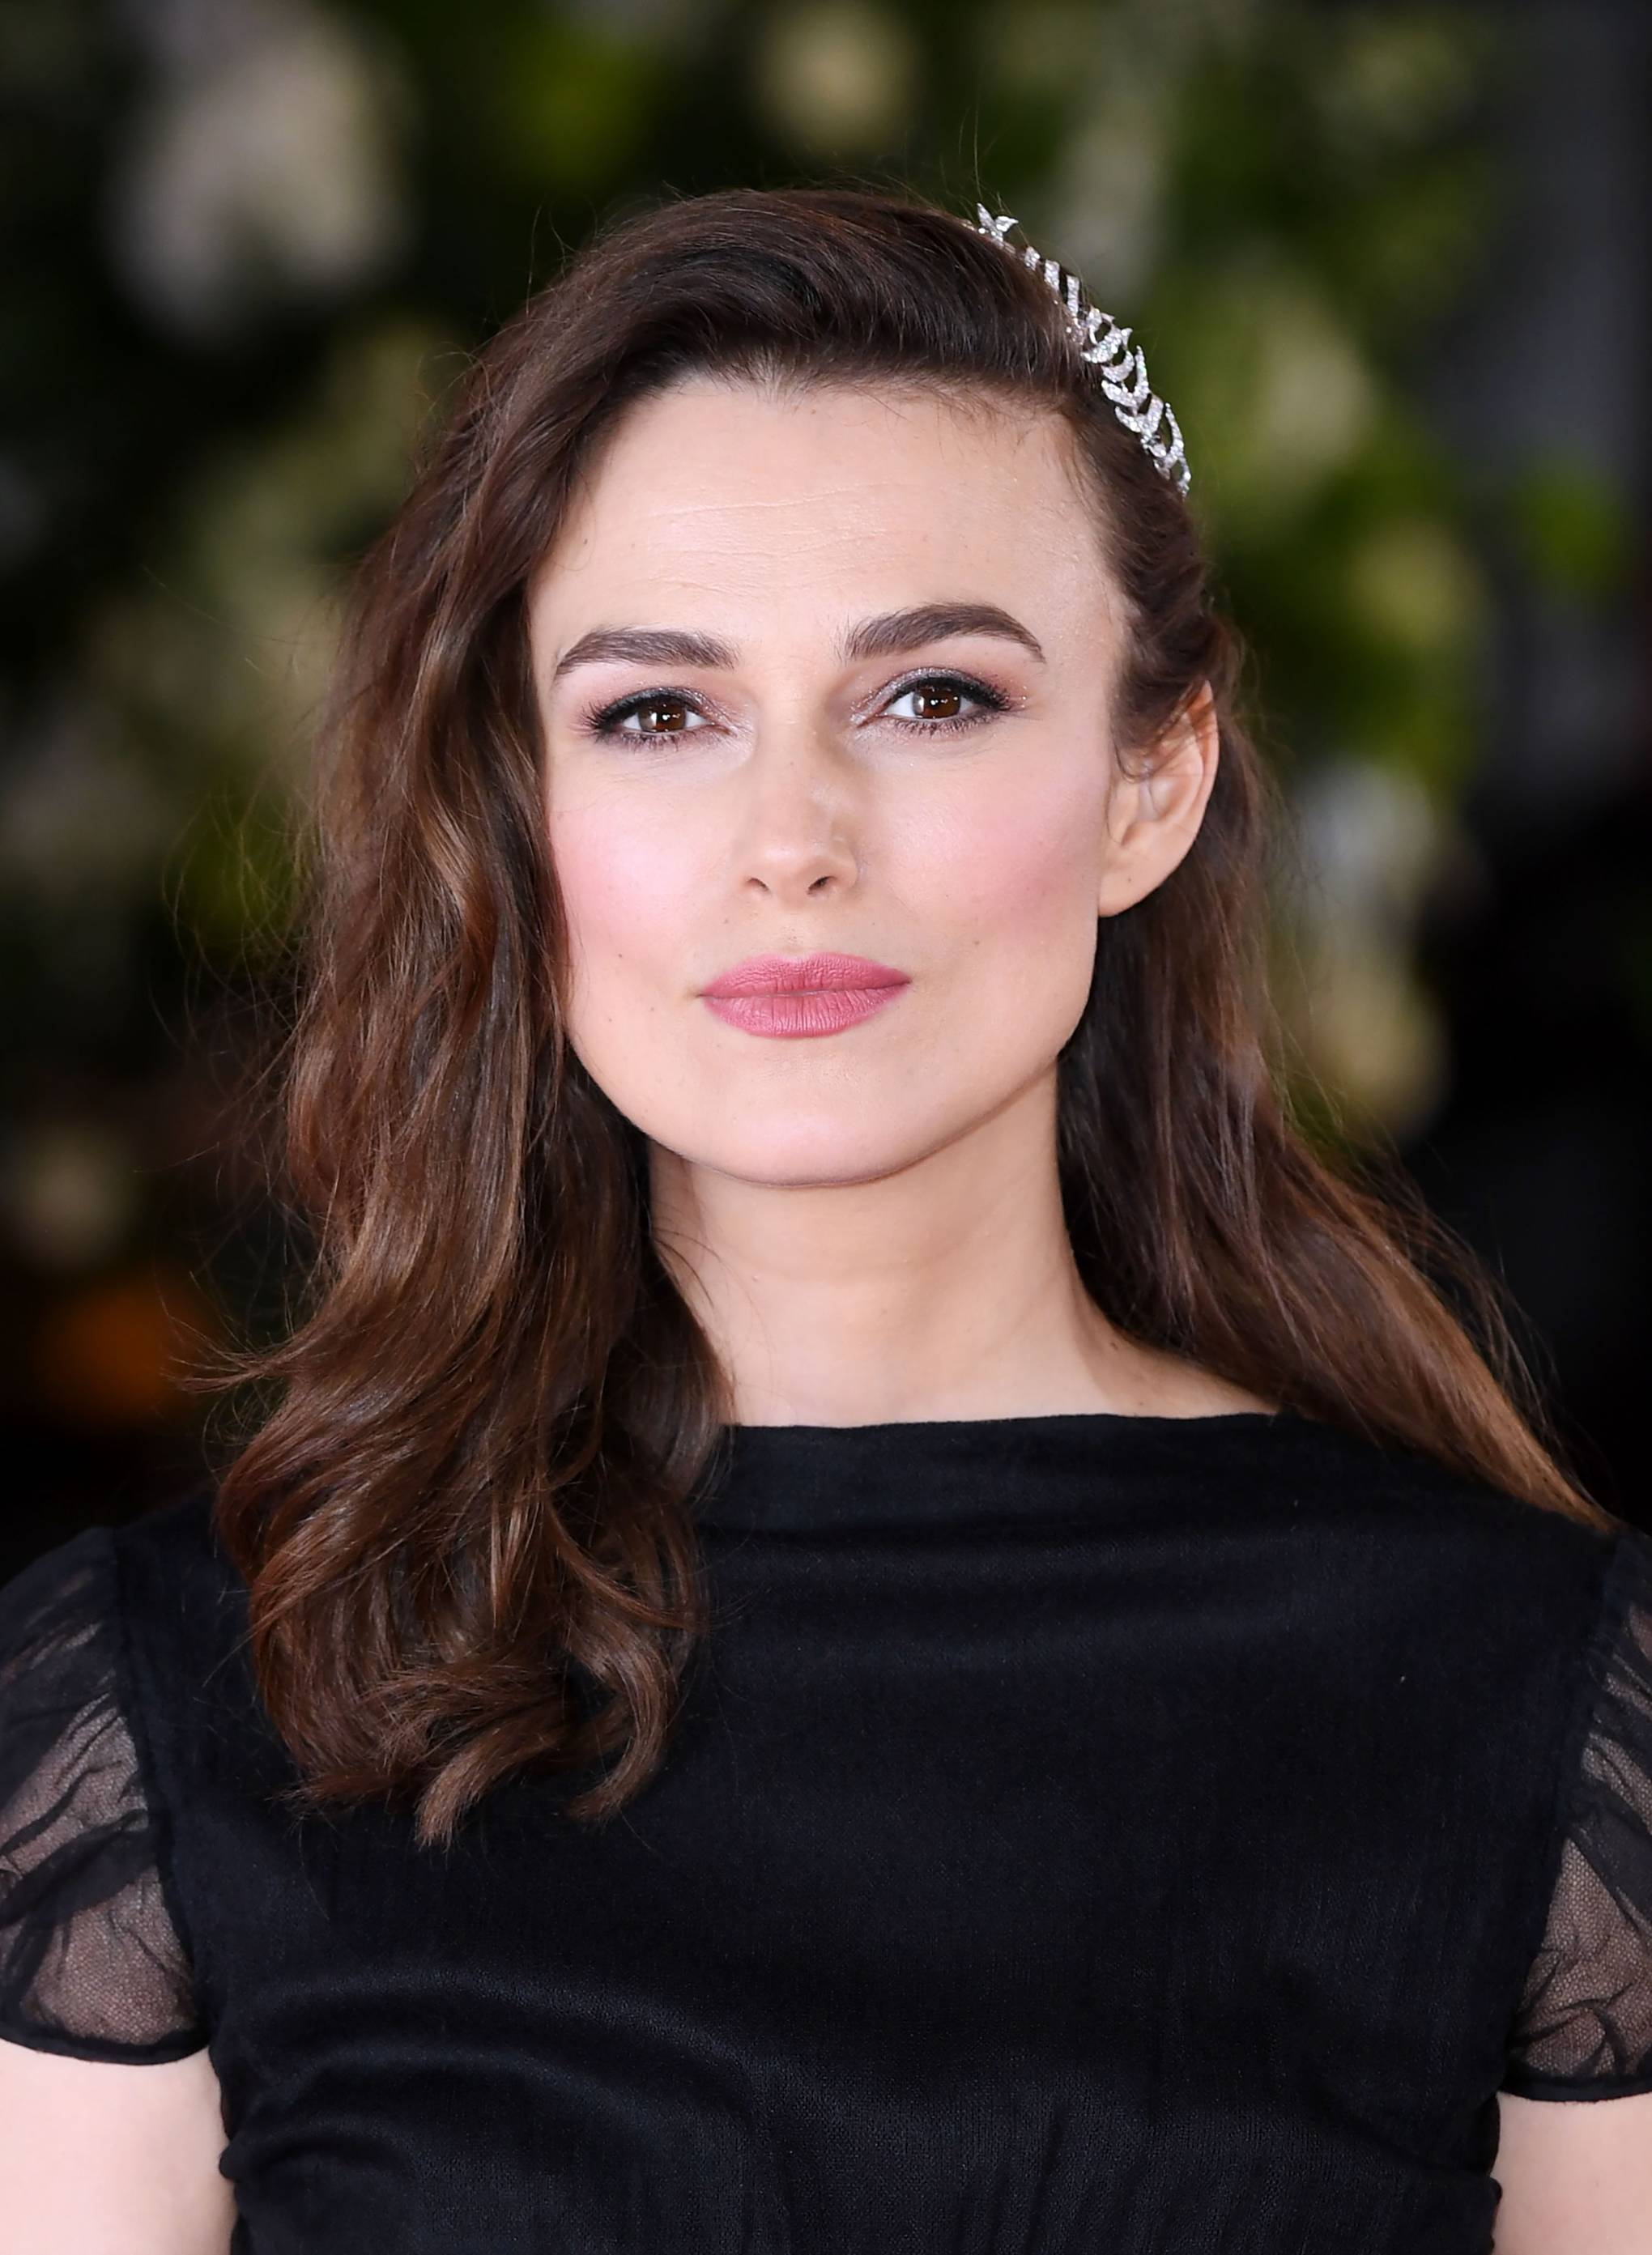 Keira Knightley On The Future For Women In Film | British Vogue